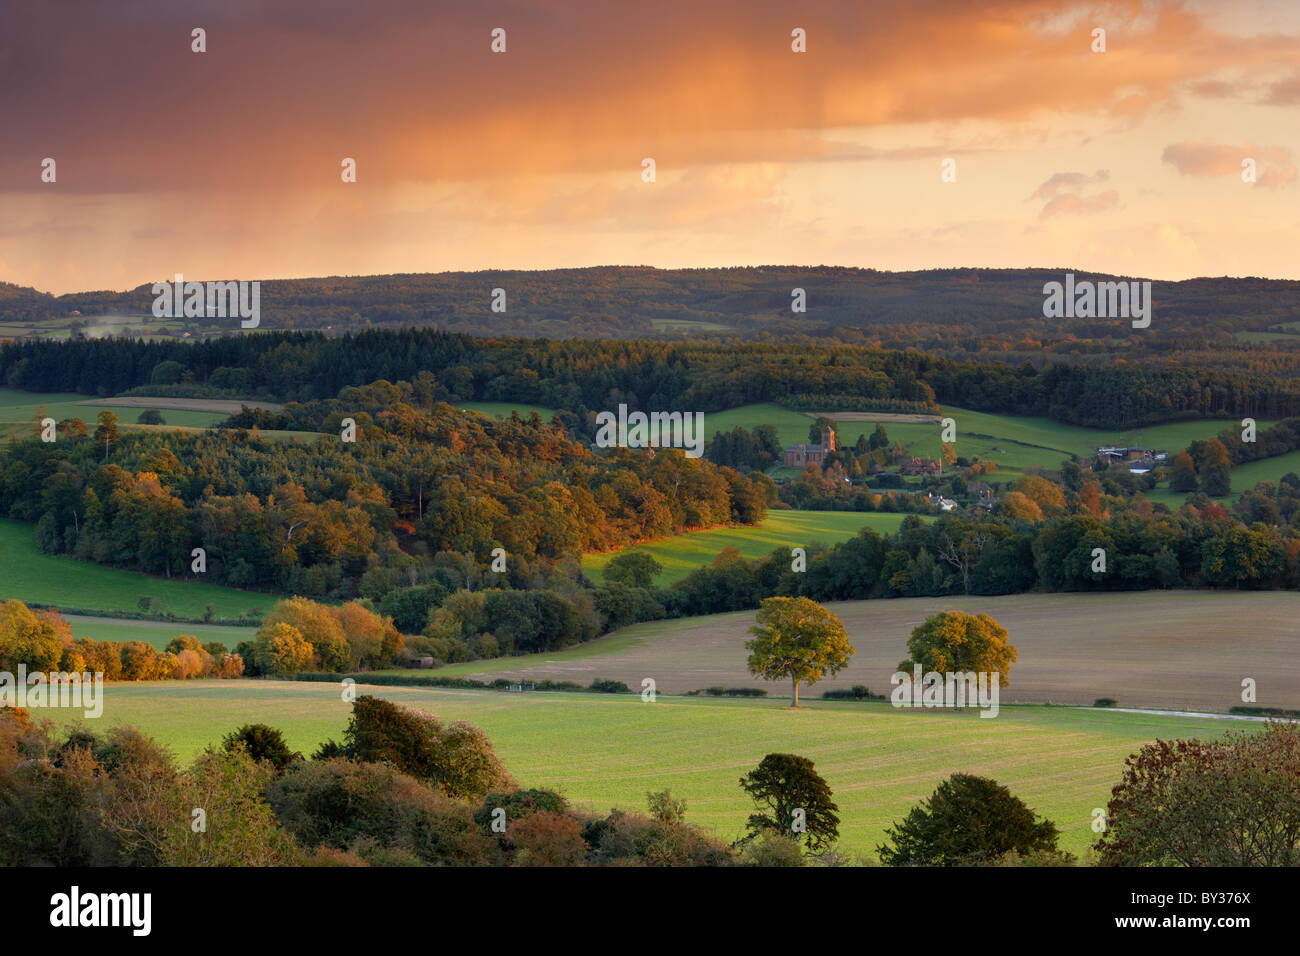 Views toward Albury and the Surrey Hills countryside - Stock Image